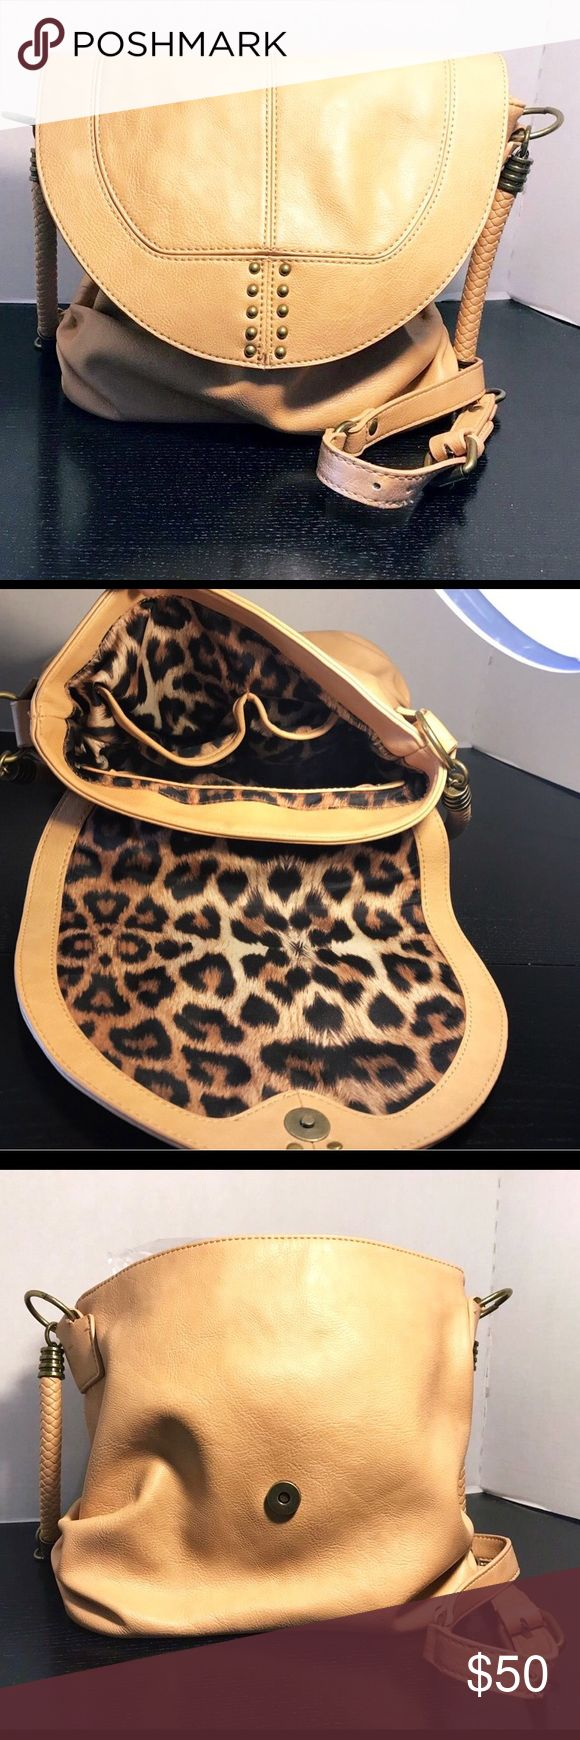 Jessica Simpson Tan Handbag 👜 Cute Crossbody Bag! Strap is about twenty inches. Bag itself is about 9 inches long and 8 wide. Preowned and in excellent condition. Cheetah / leopard print interior. Jessica Simpson Bags Crossbody Bags